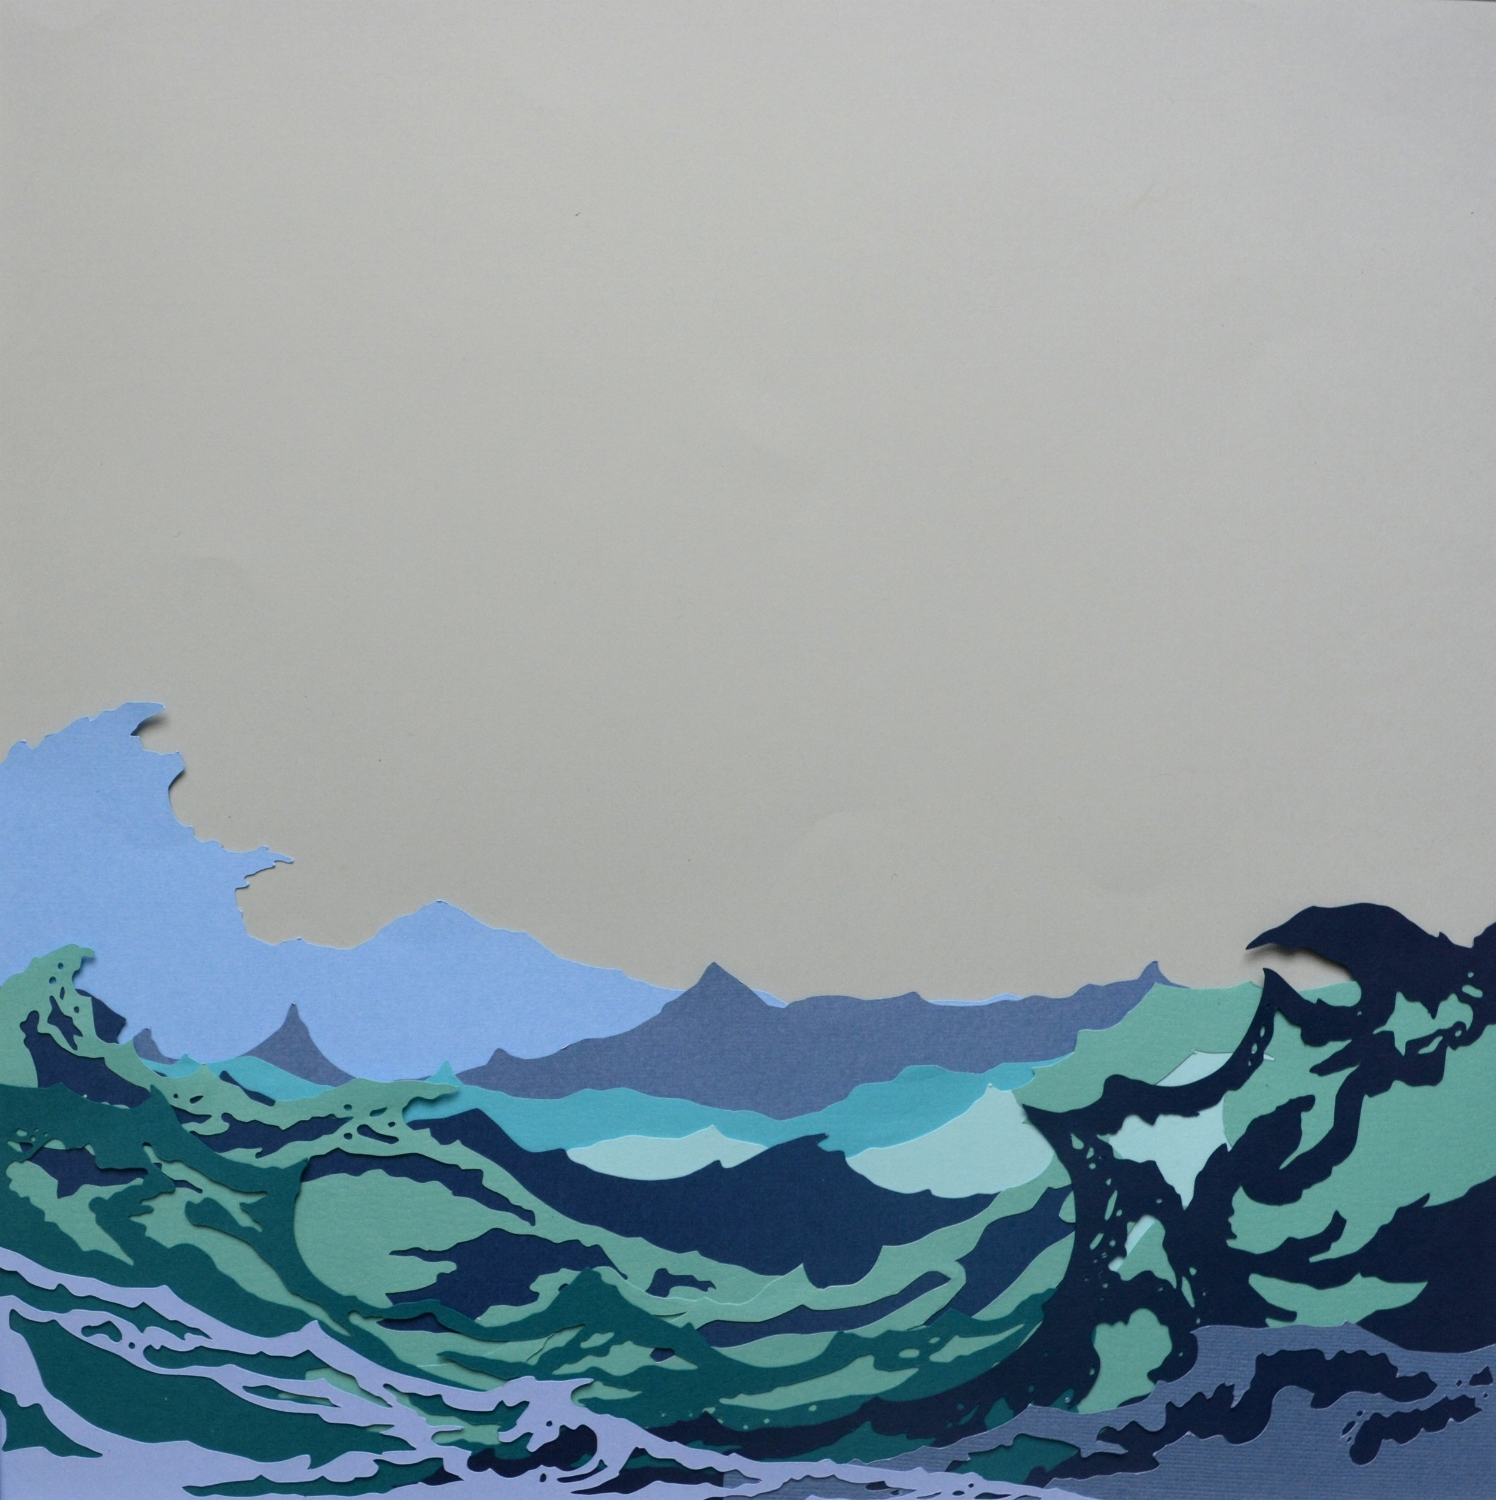 Donegal Waves   - 2017 - Layered Cut Paper - 50cm x 50cm